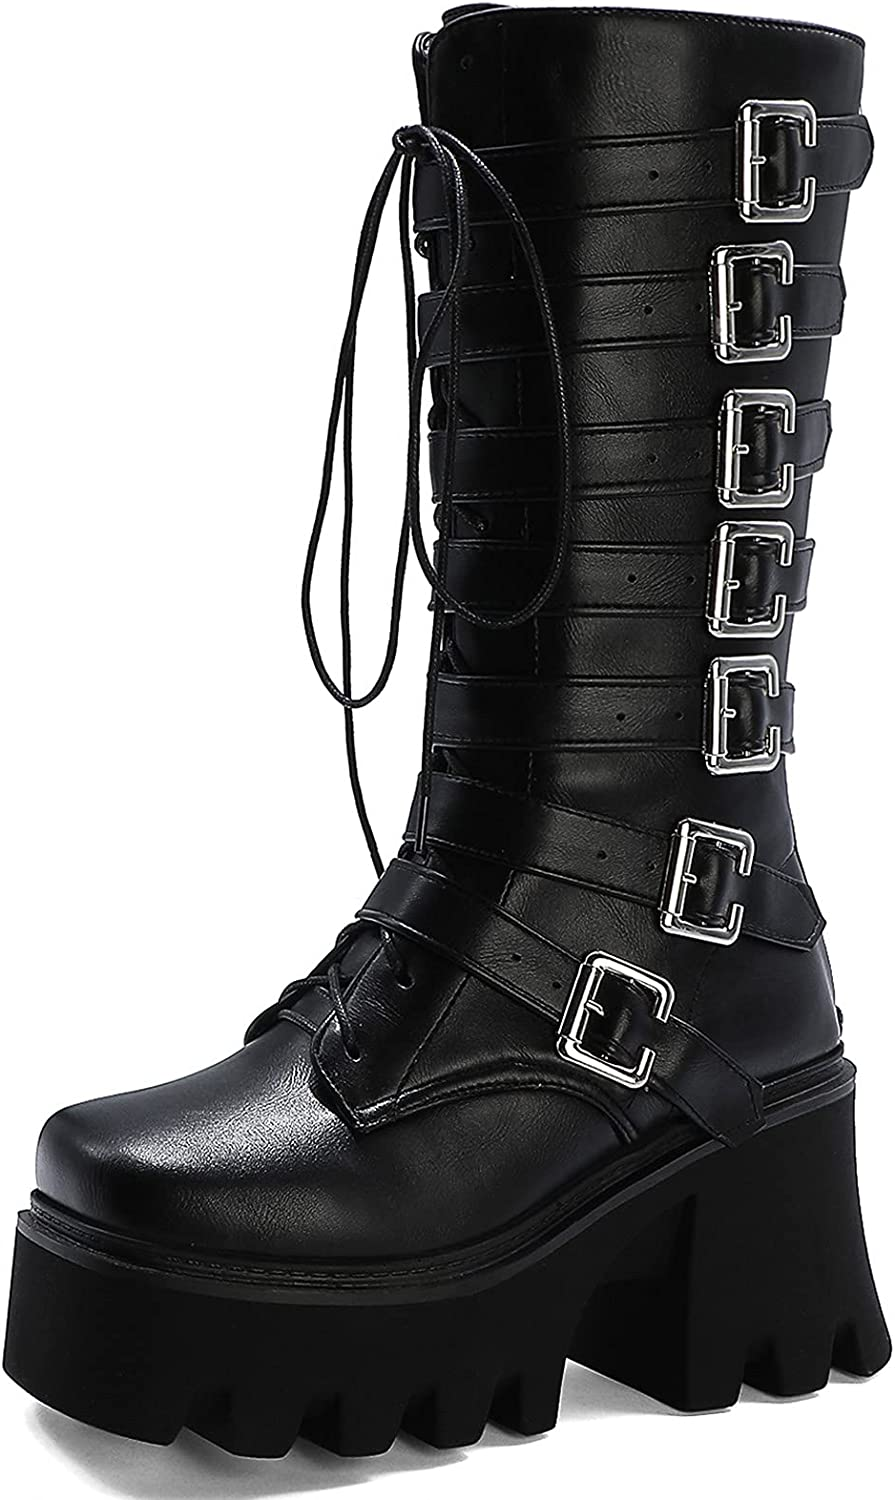 SaraIris Women's Platform Boots Goth Recommendation Hee Max 55% OFF Chunky Style Punk Block